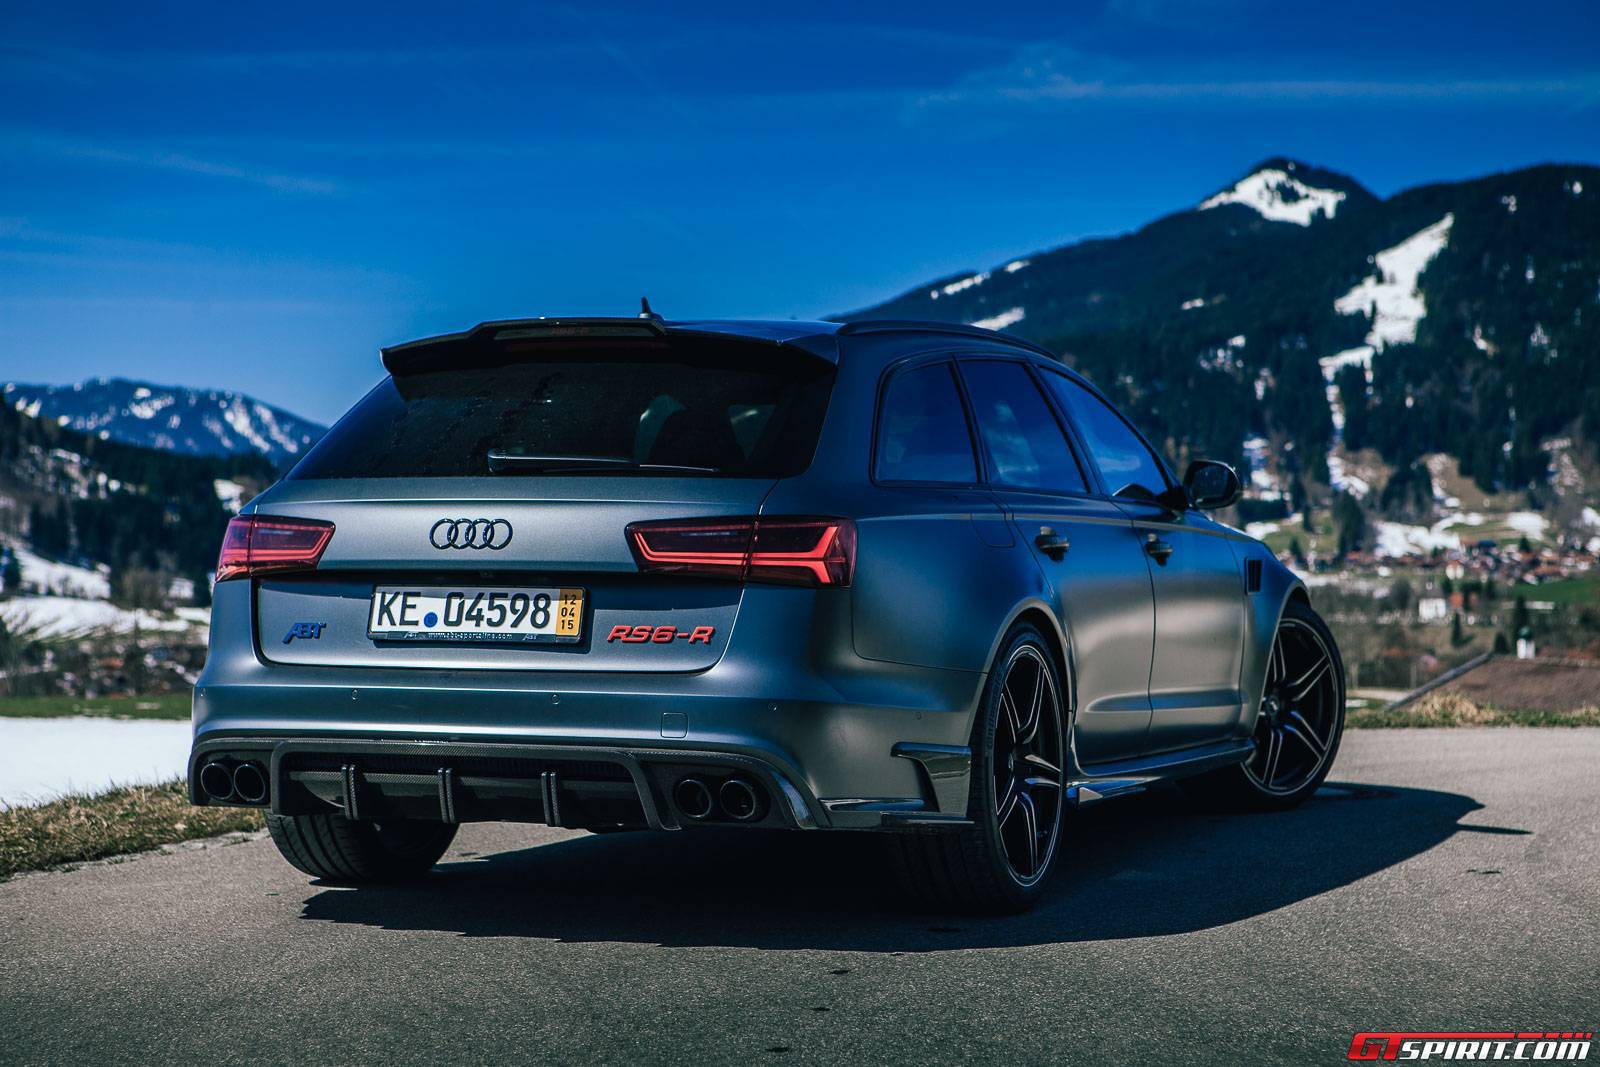 2015 ABT Audi RS6R Part 1  20 photos  GTspirit